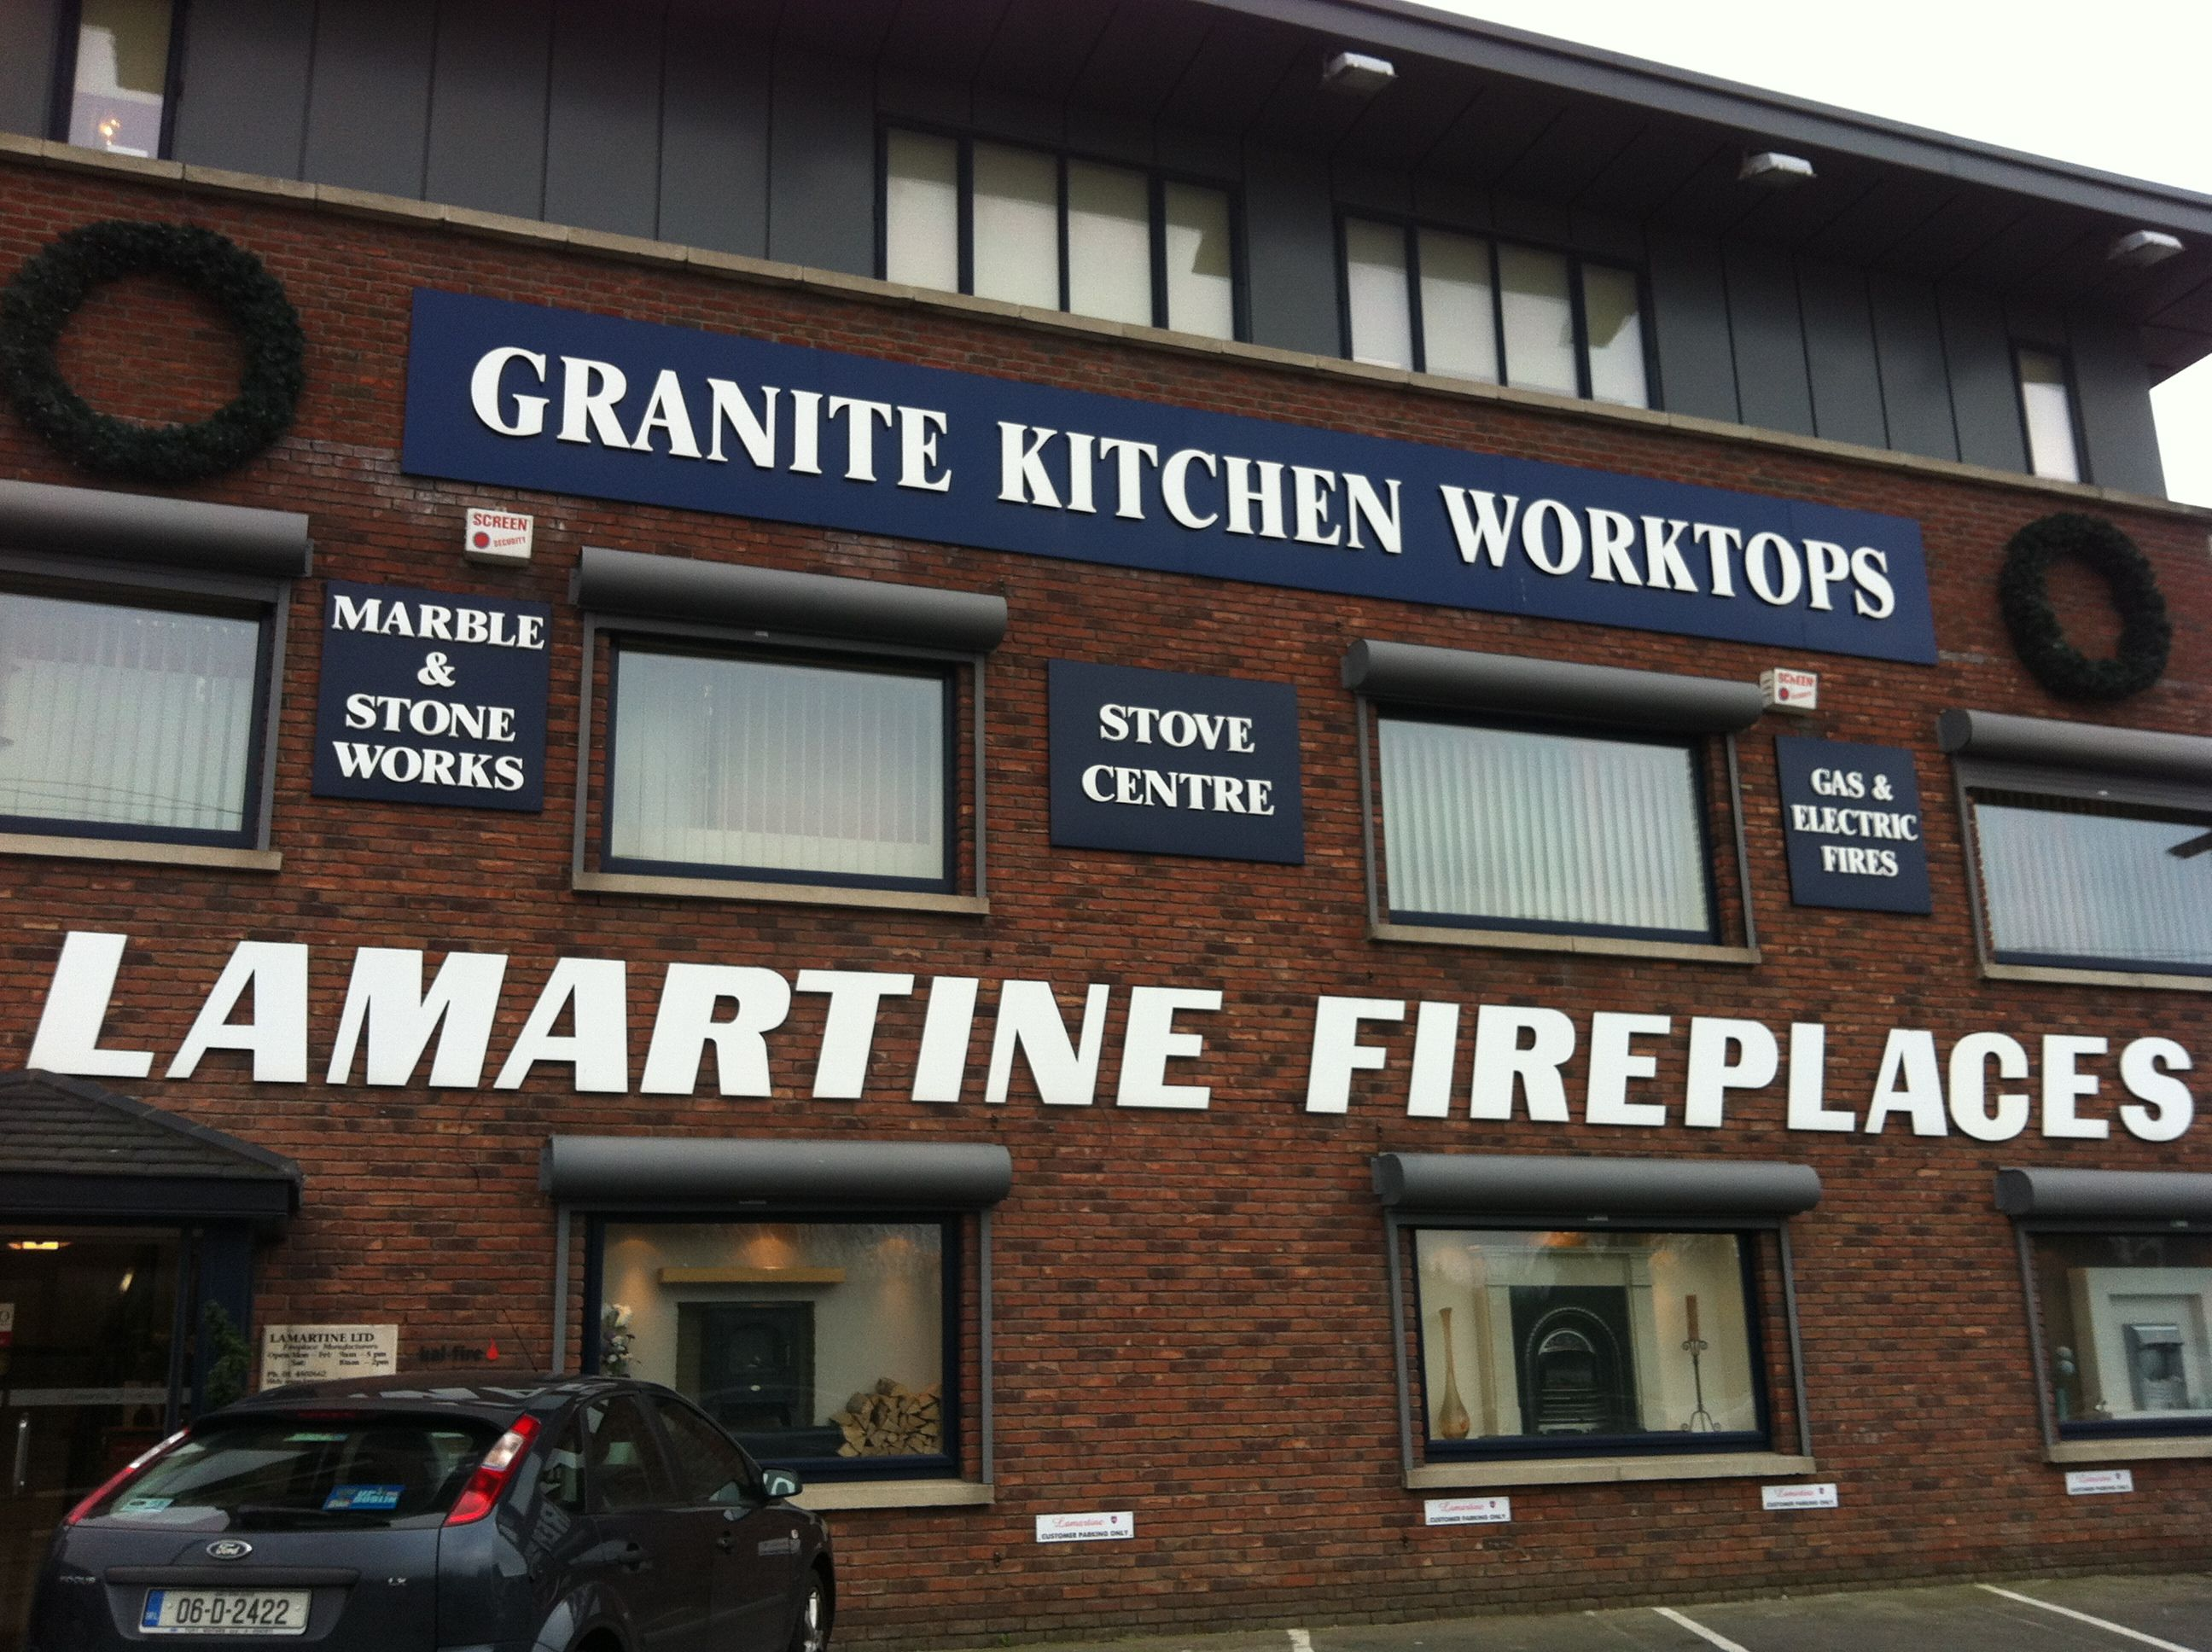 Lamartine Fires & Fireplaces established in 1982 is